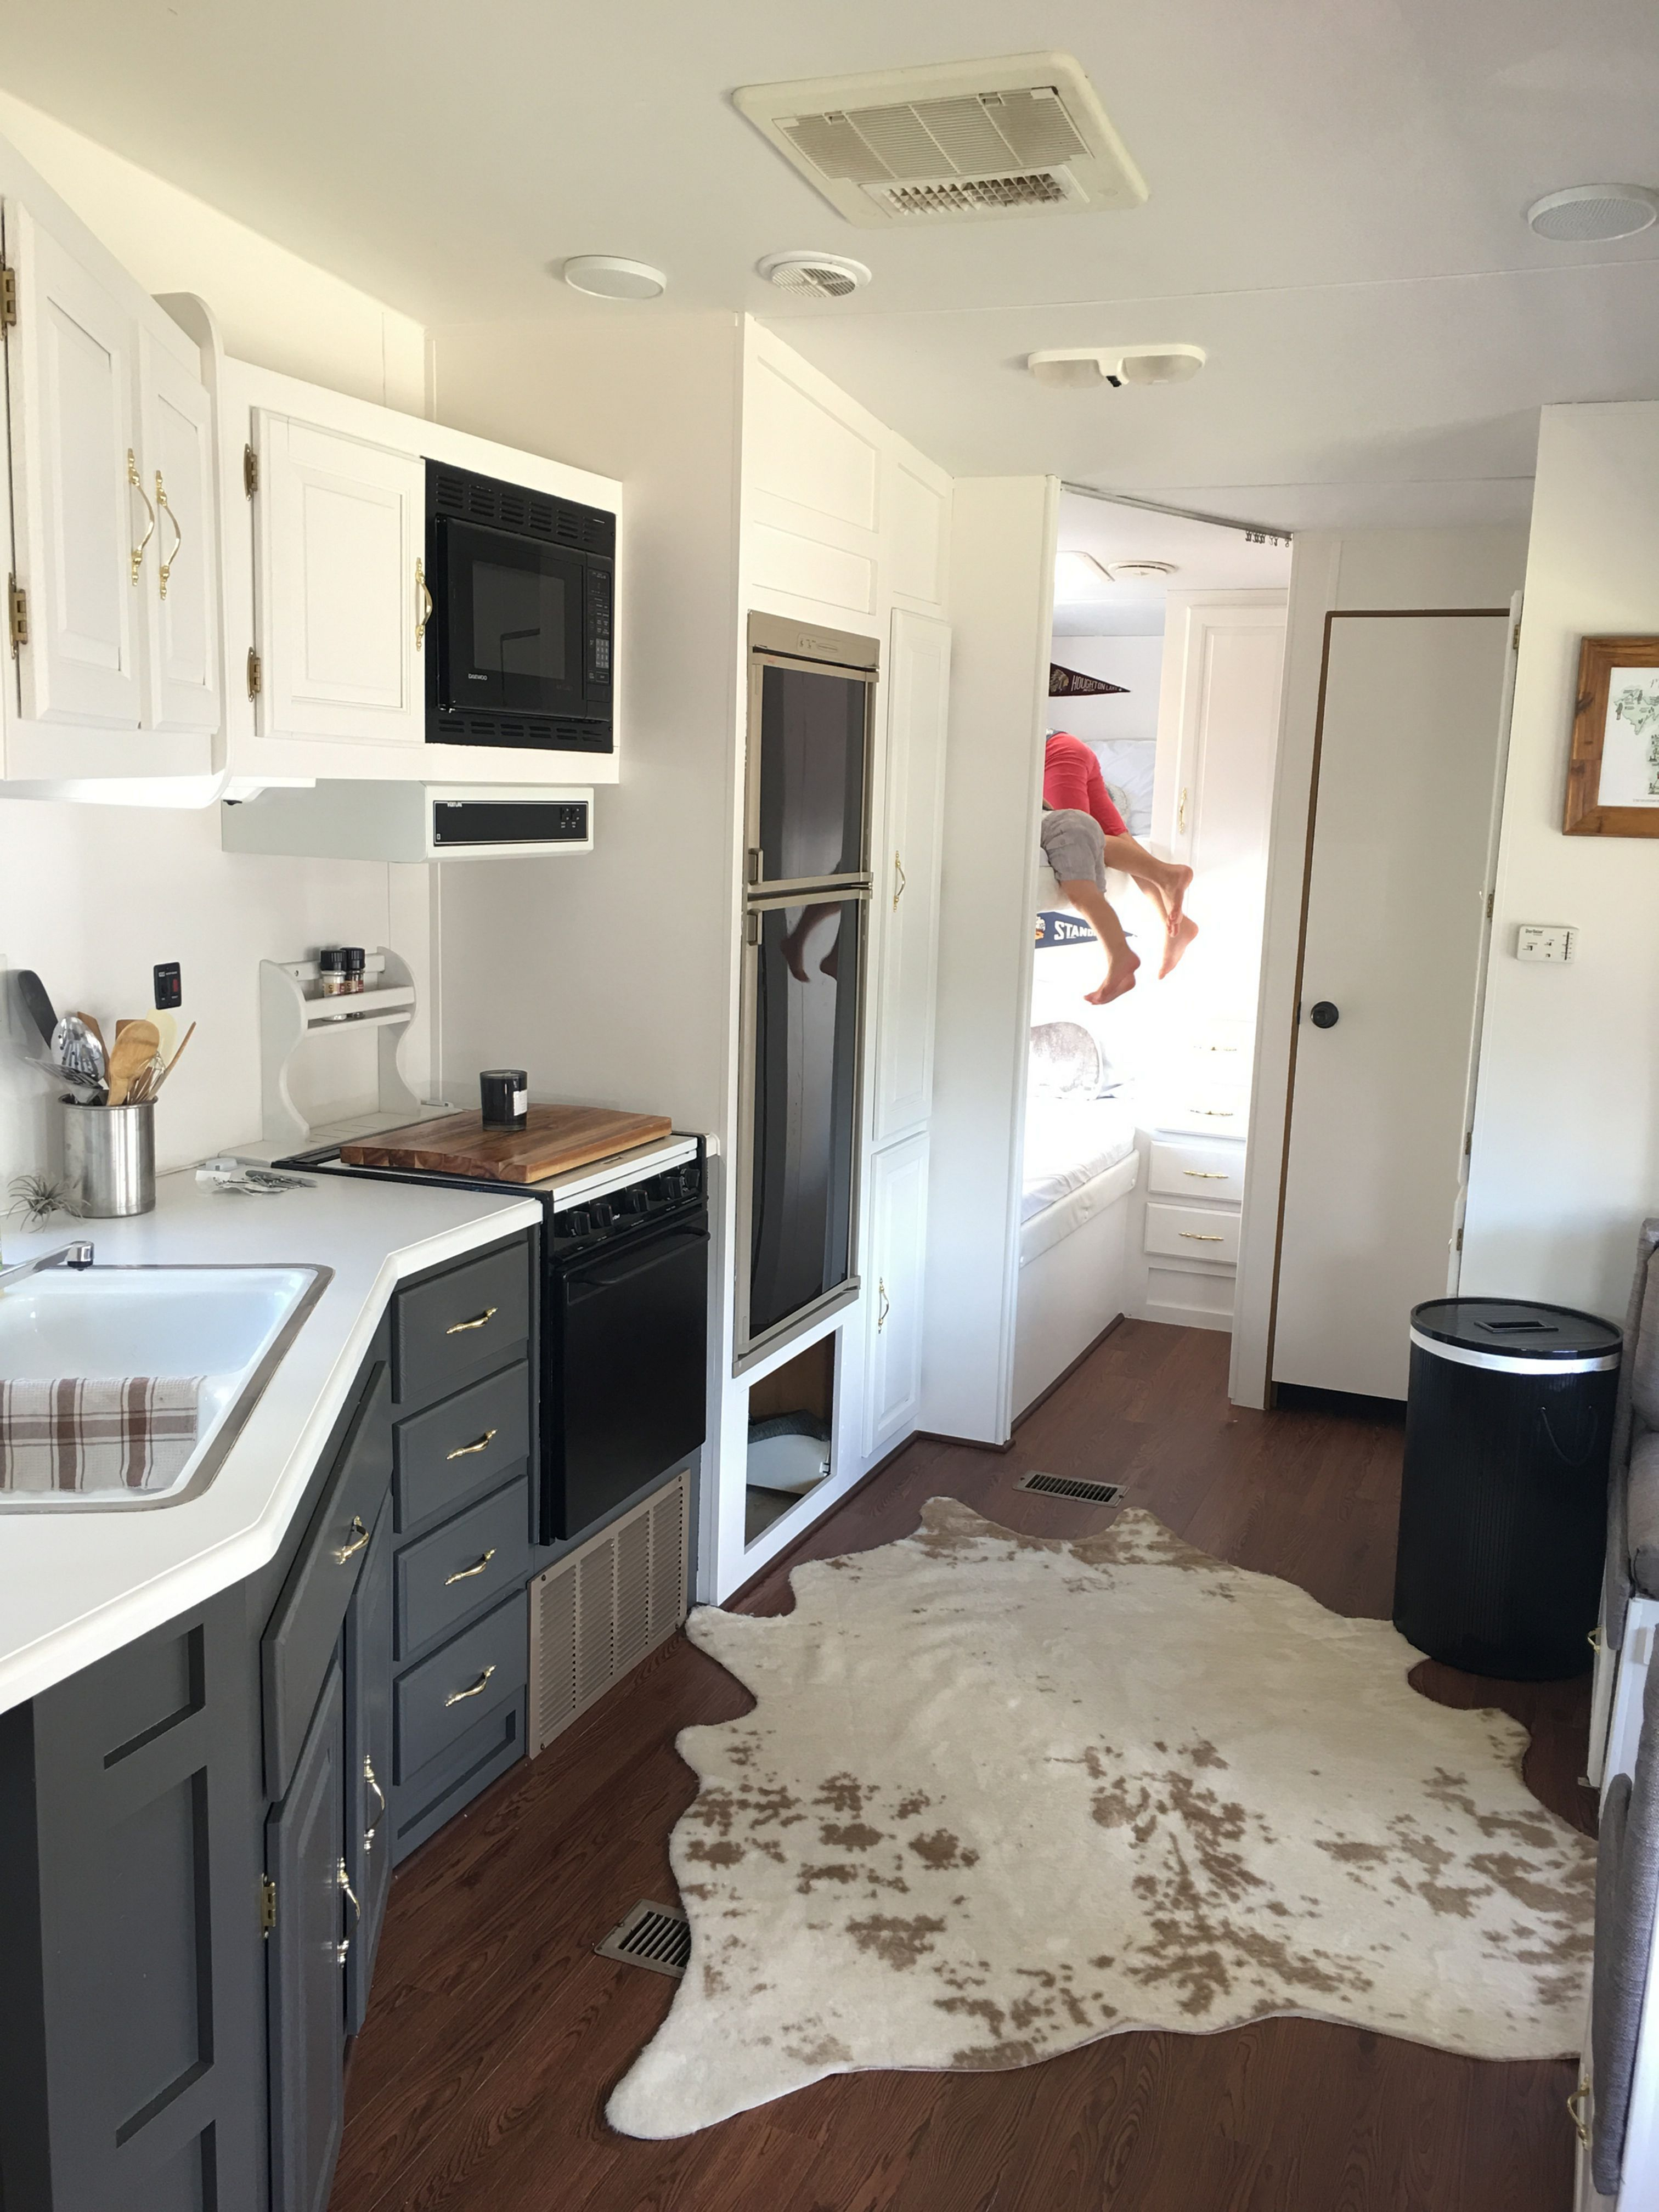 Best Camper Interior Ideas Easy And Fast To Re Decor Your Camper 2929  Https:/